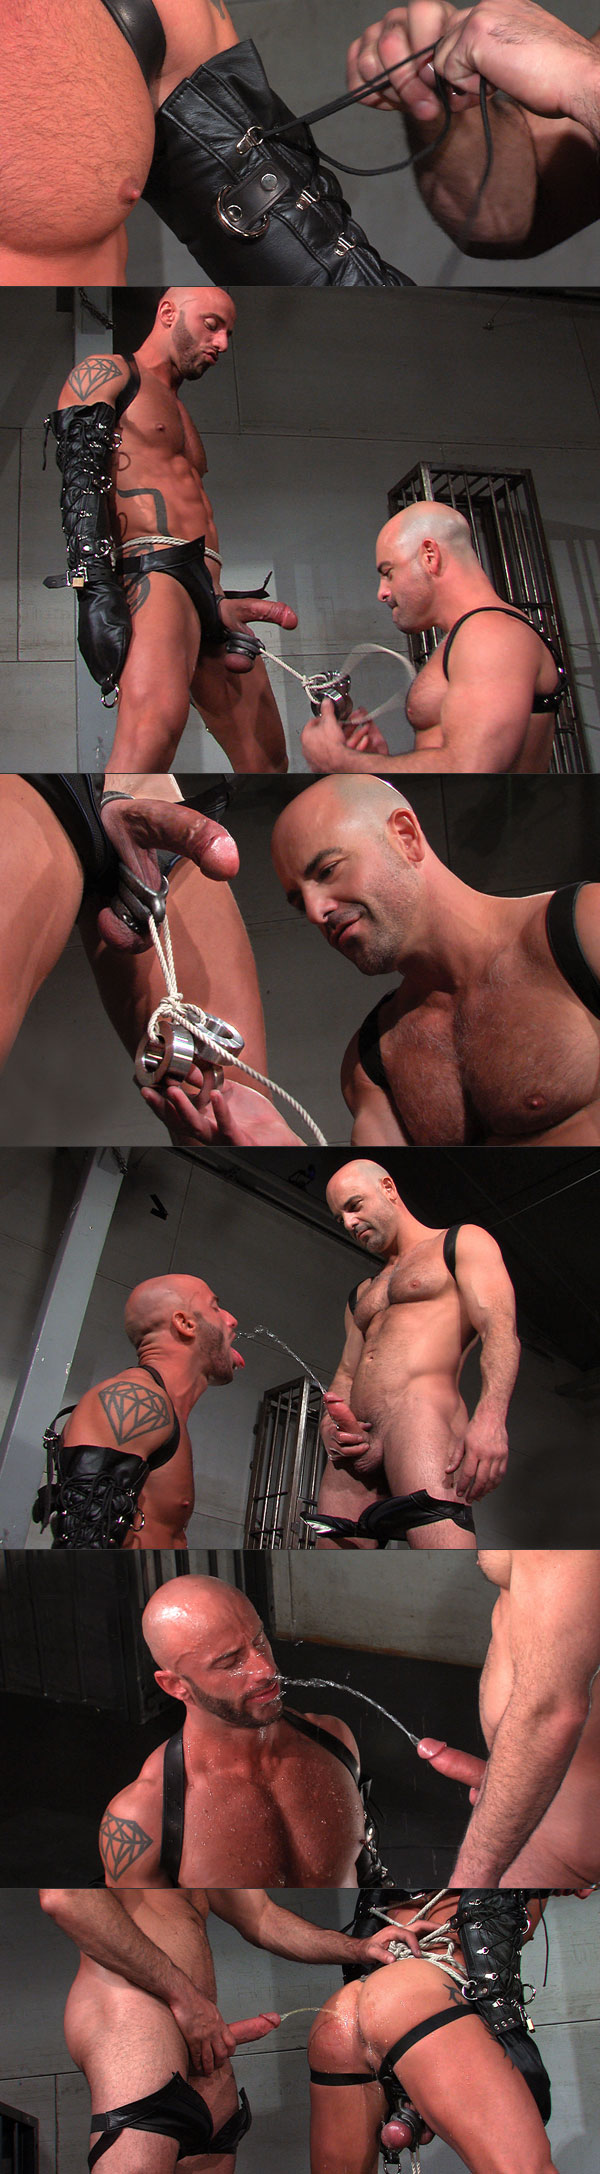 Aymeric Porn aymeric deville gets a faceful of piss - guys in gear